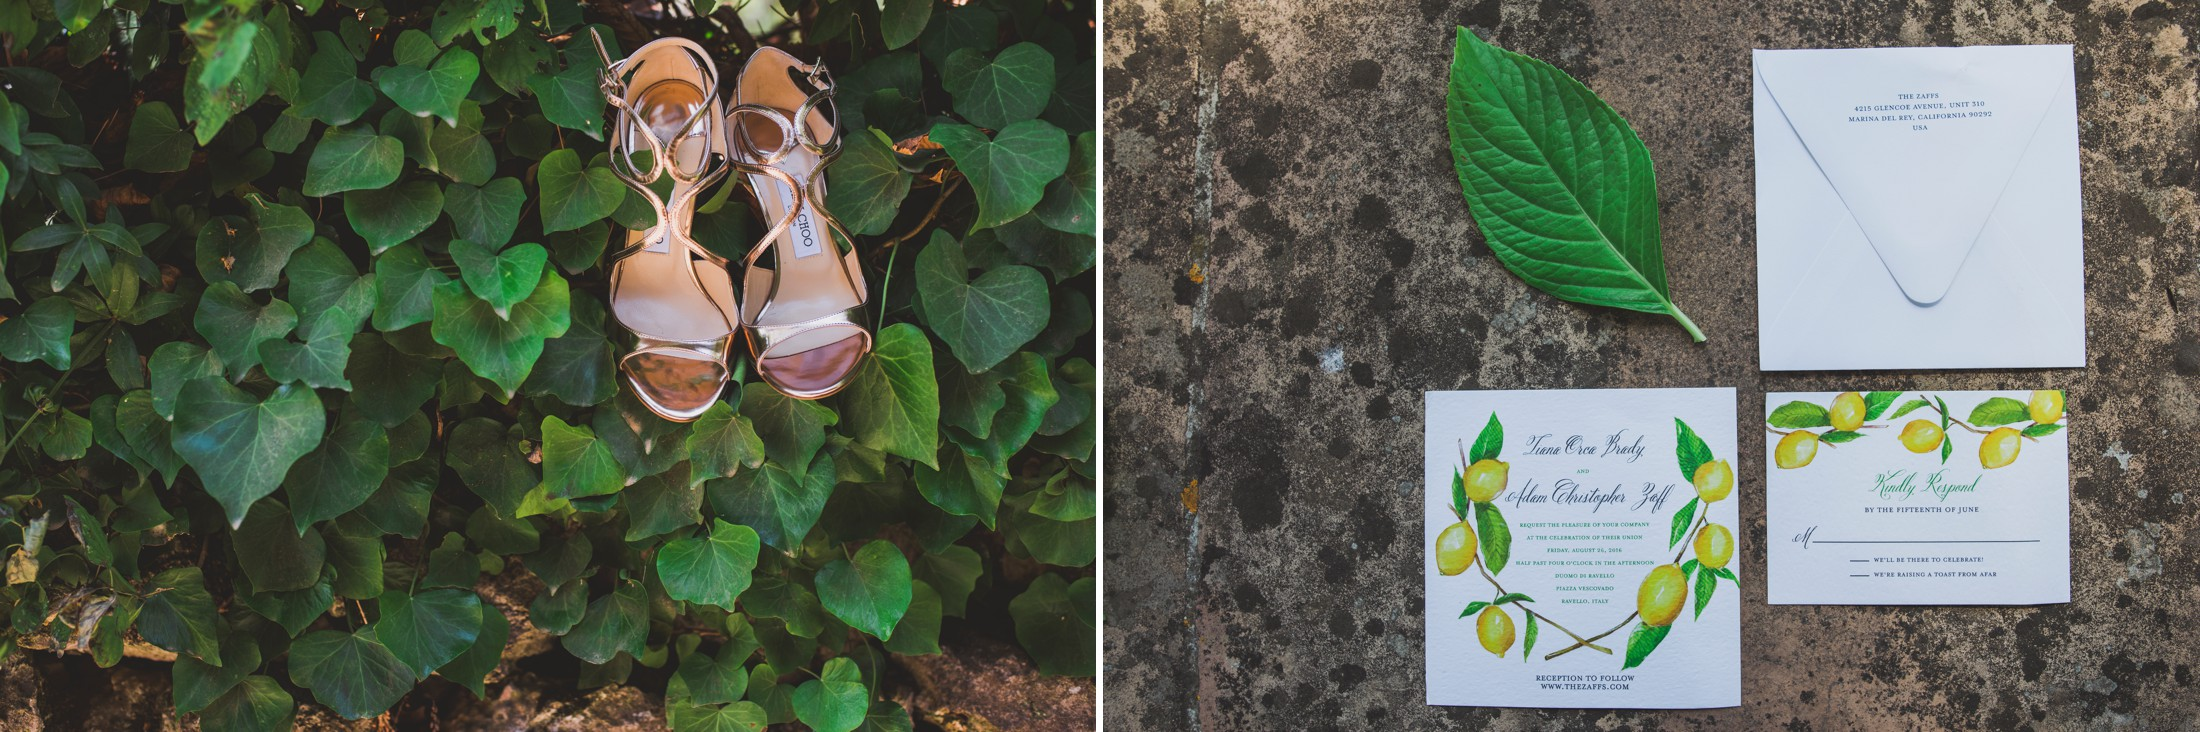 wedding in ravello collage bride's shoes and invitation card